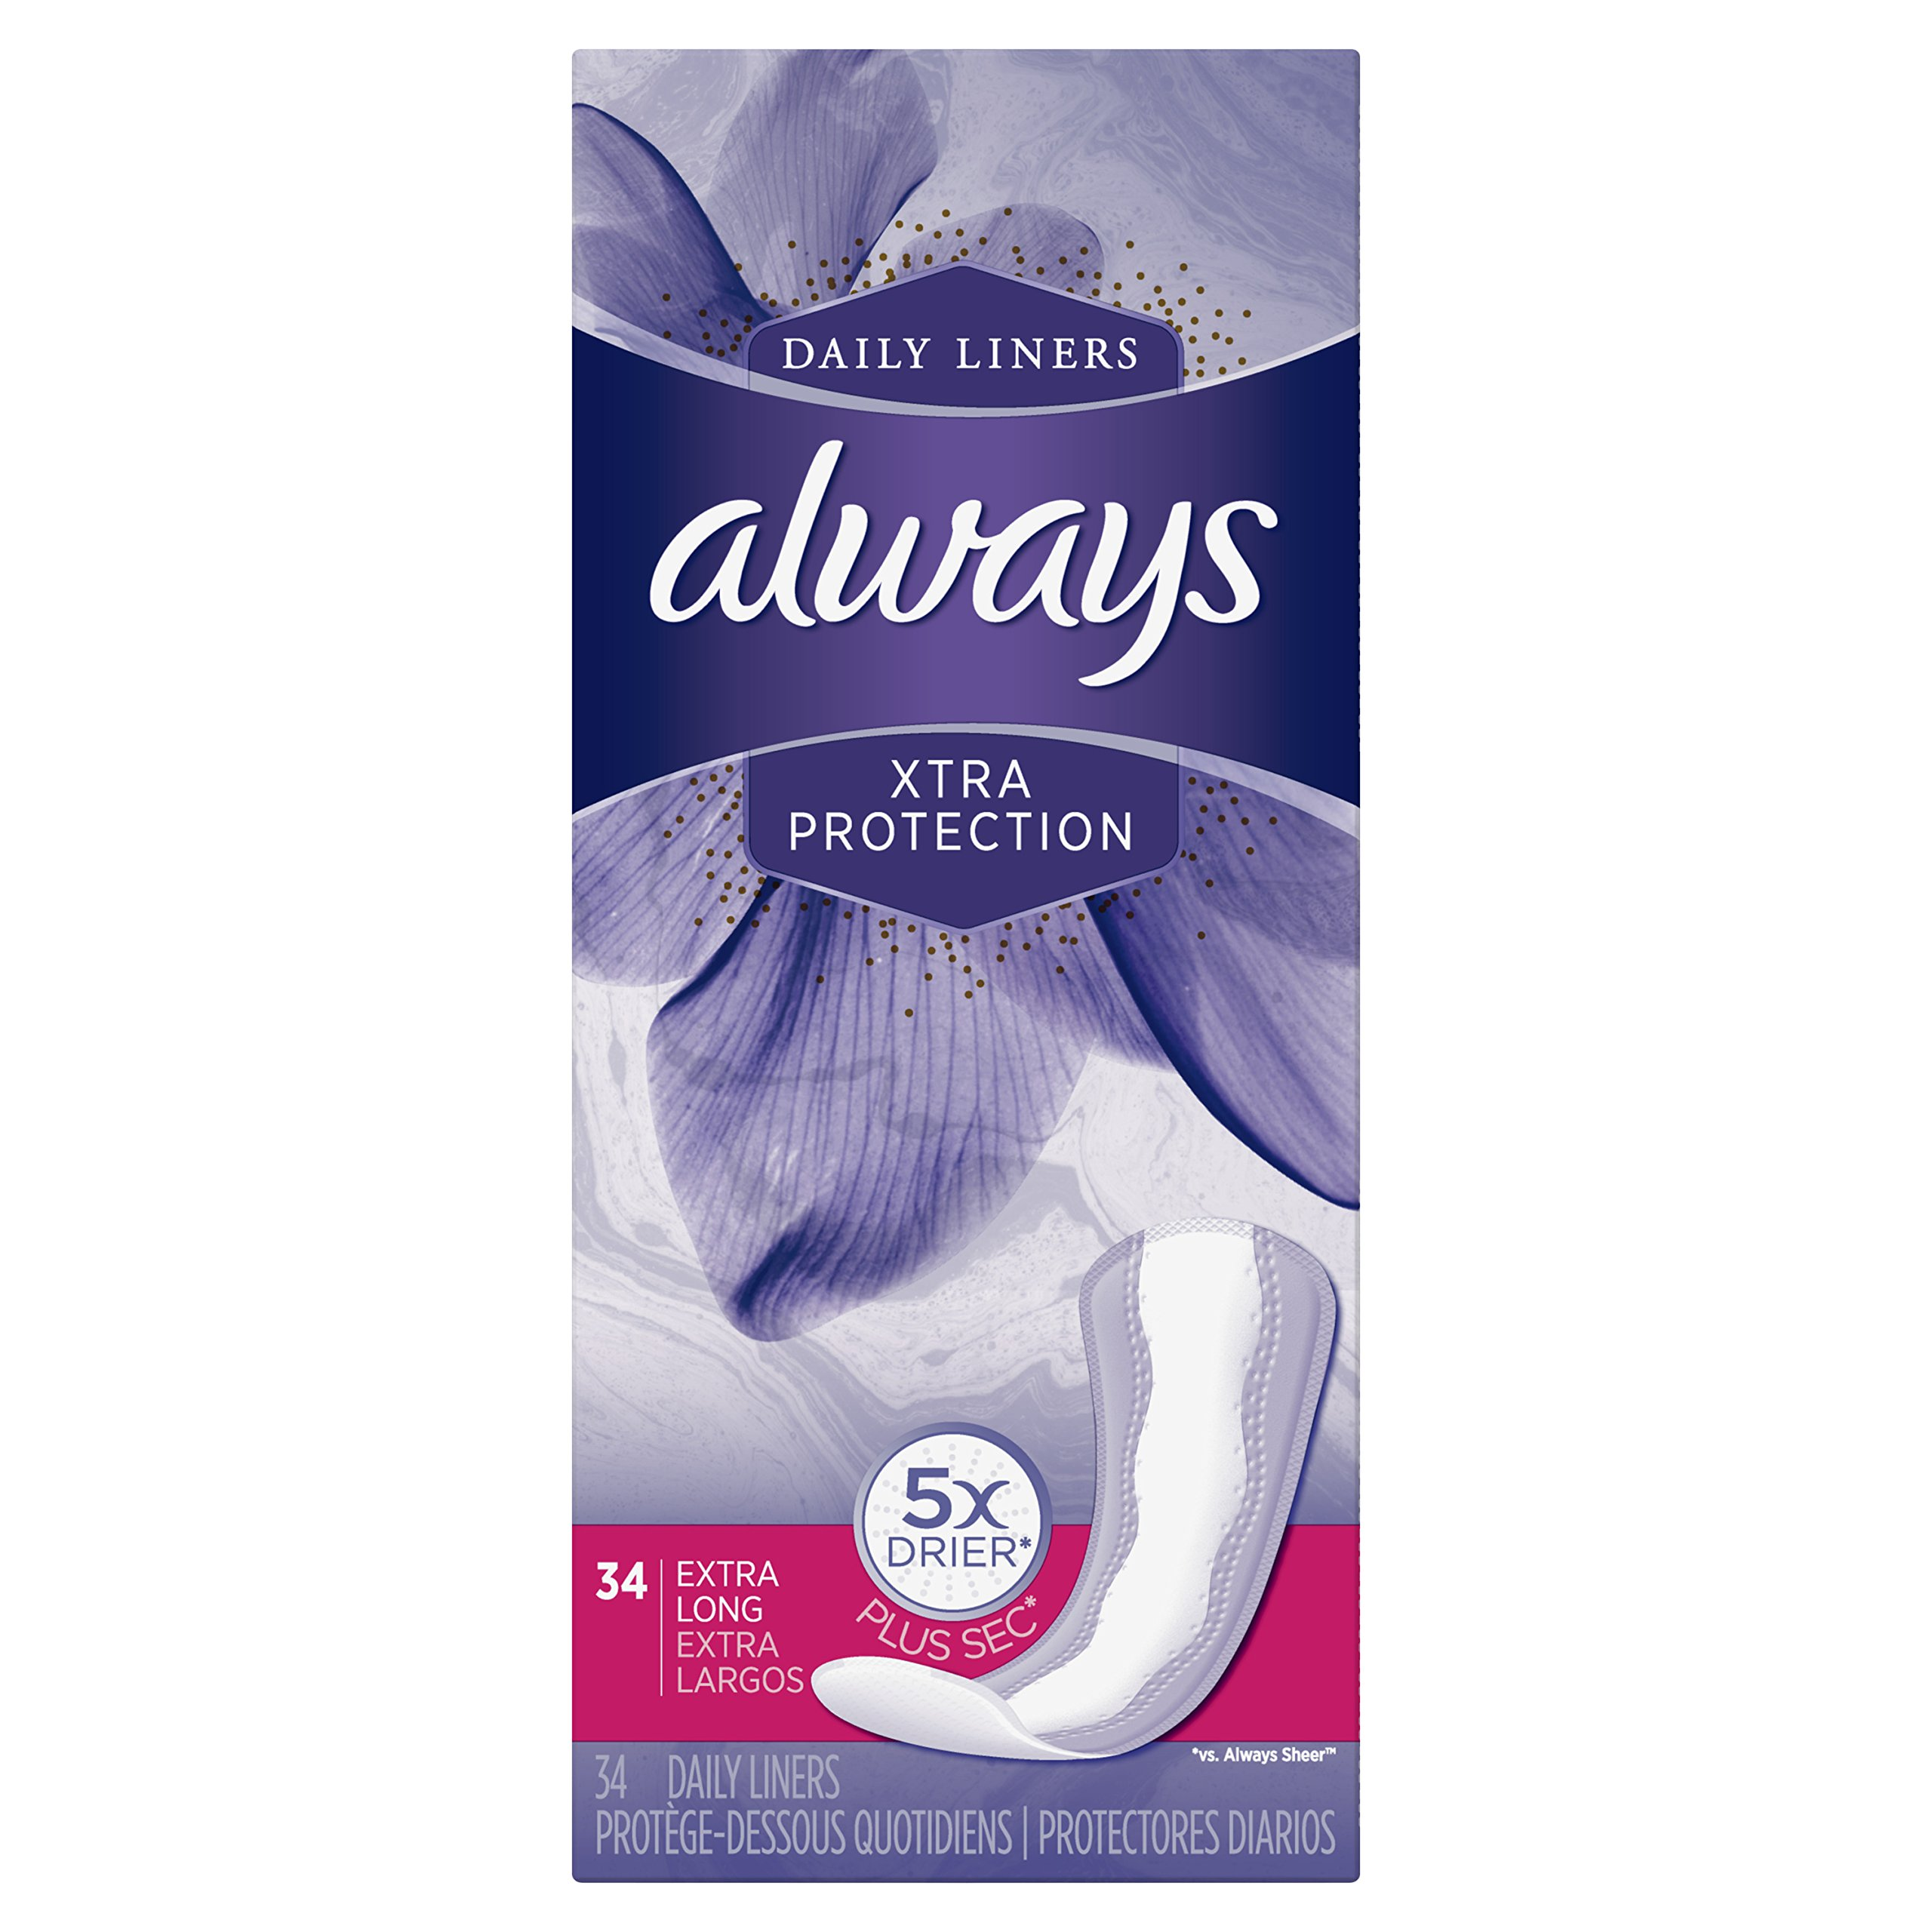 Always Xtra Protection Daily Feminine Panty Liners for Women, Extra Long, Unscented, 34